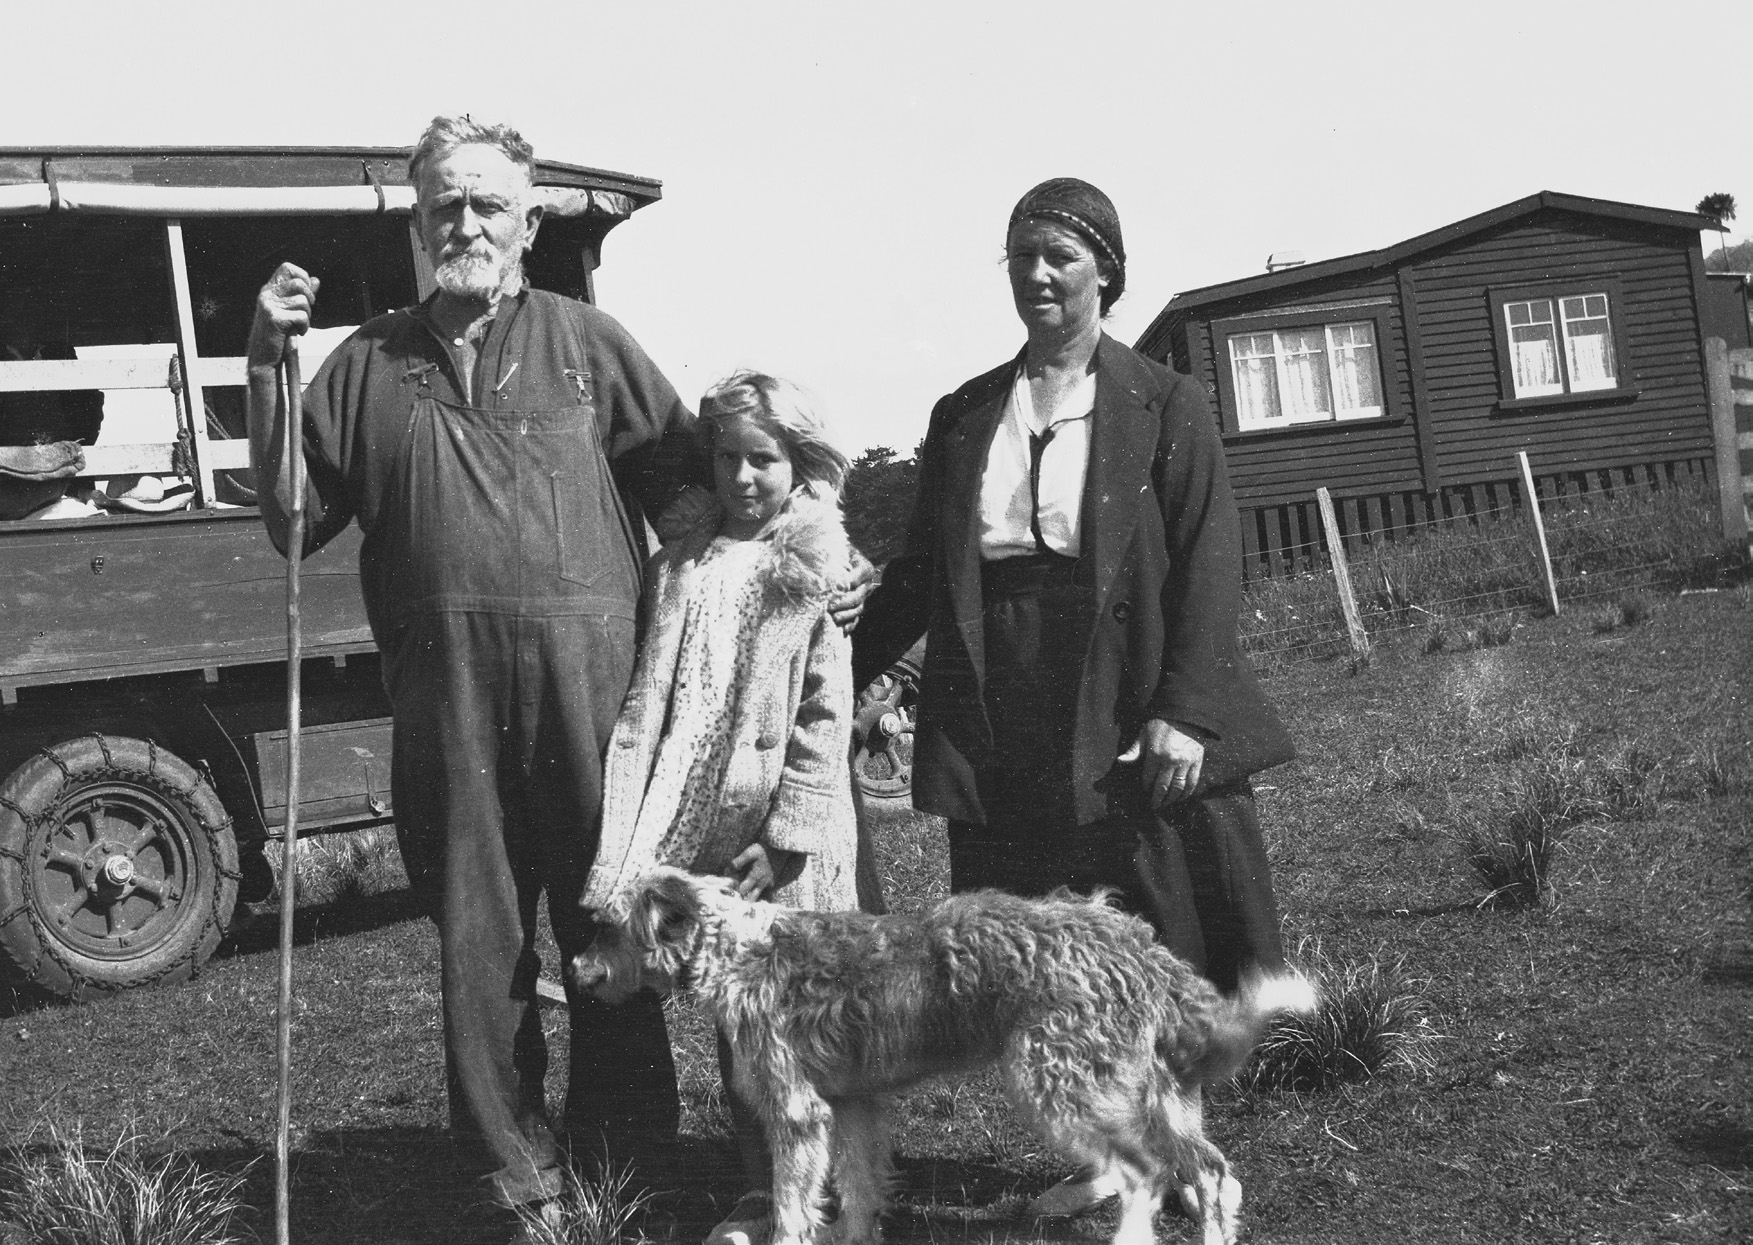 Pa Bethell, Lavinia Perry and Mrs Marie Perry with the dog, Anawhata Jack, on Anawhata Road, c1930, West Auckland Heritage